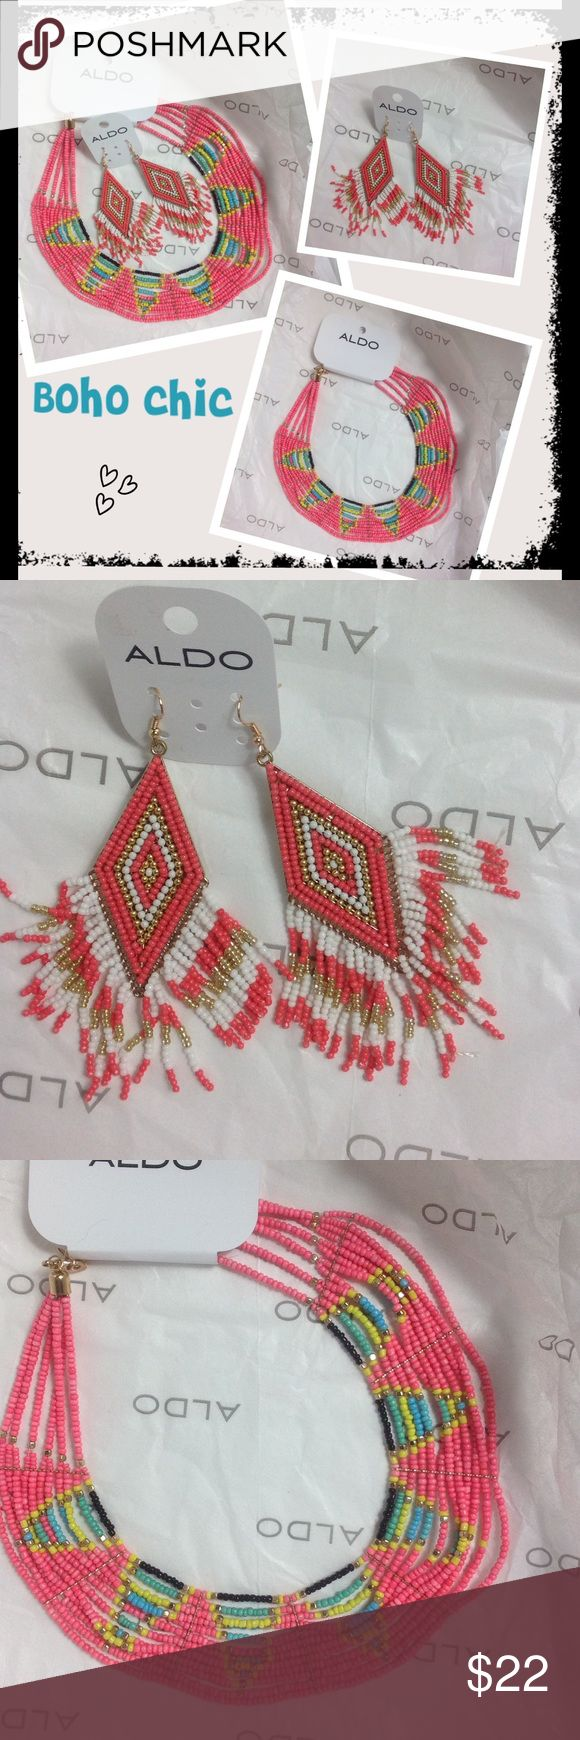 BF SALE Boho chic earrings/necklace set Aldo nwt Boho chic earrings and necklace set Aldo nwt. Great Christmas gift set or to give to yourself ;) From Aldo. Aldo Jewelry